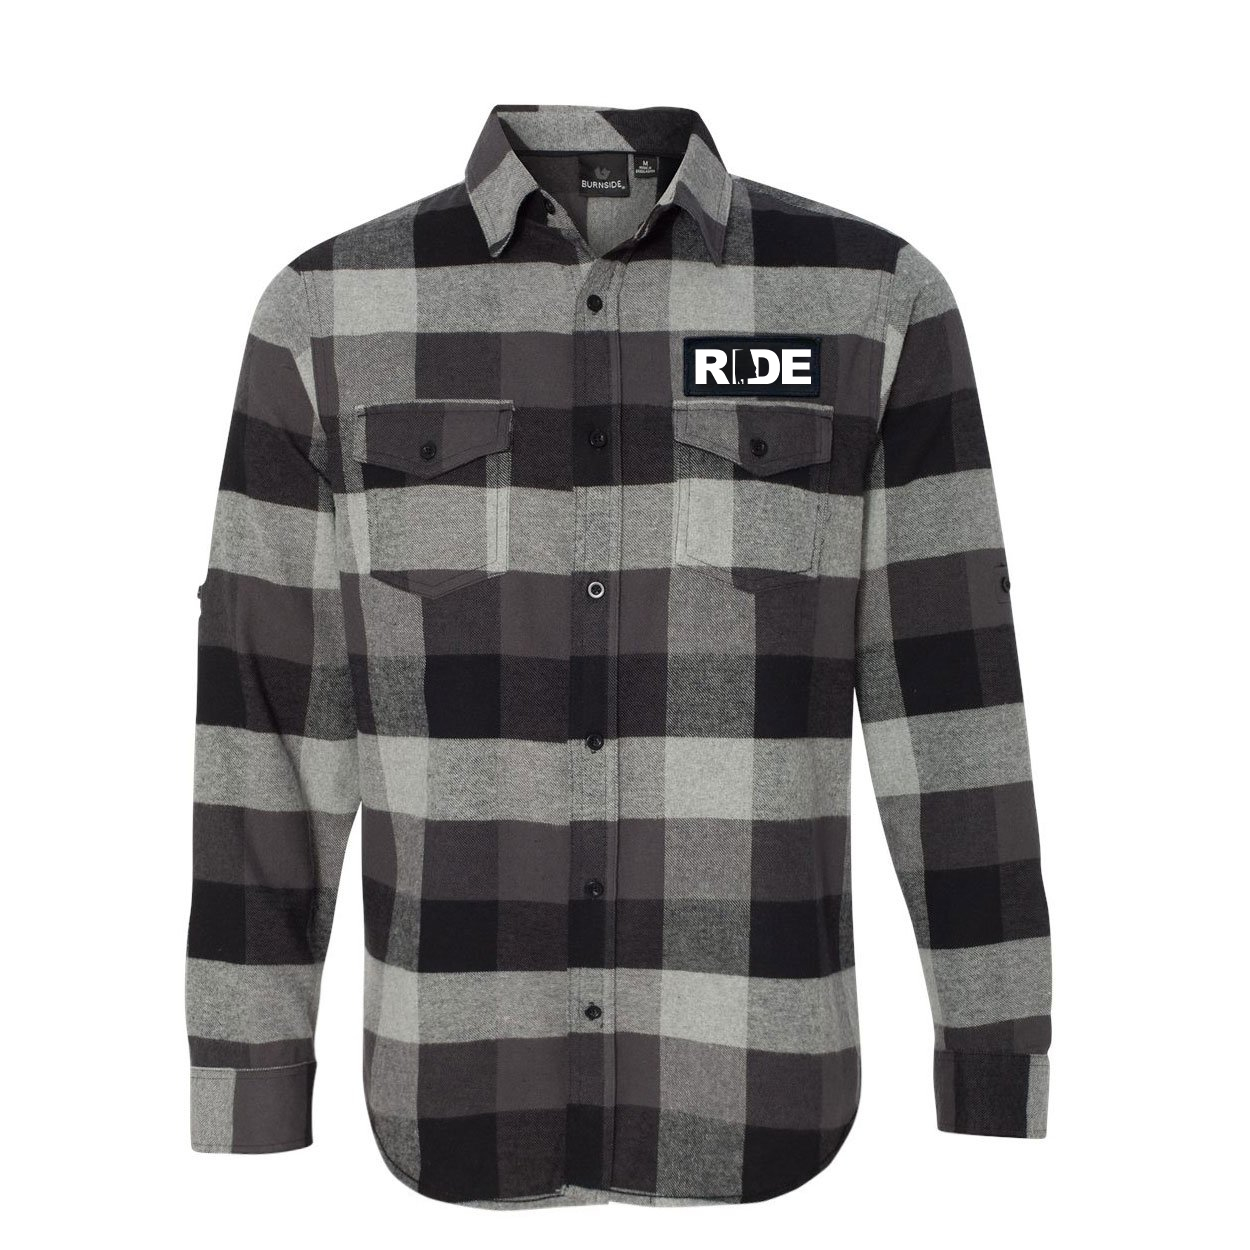 Ride Alabama Classic Unisex Long Sleeve Woven Patch Flannel Shirt Black/Gray (White Logo)